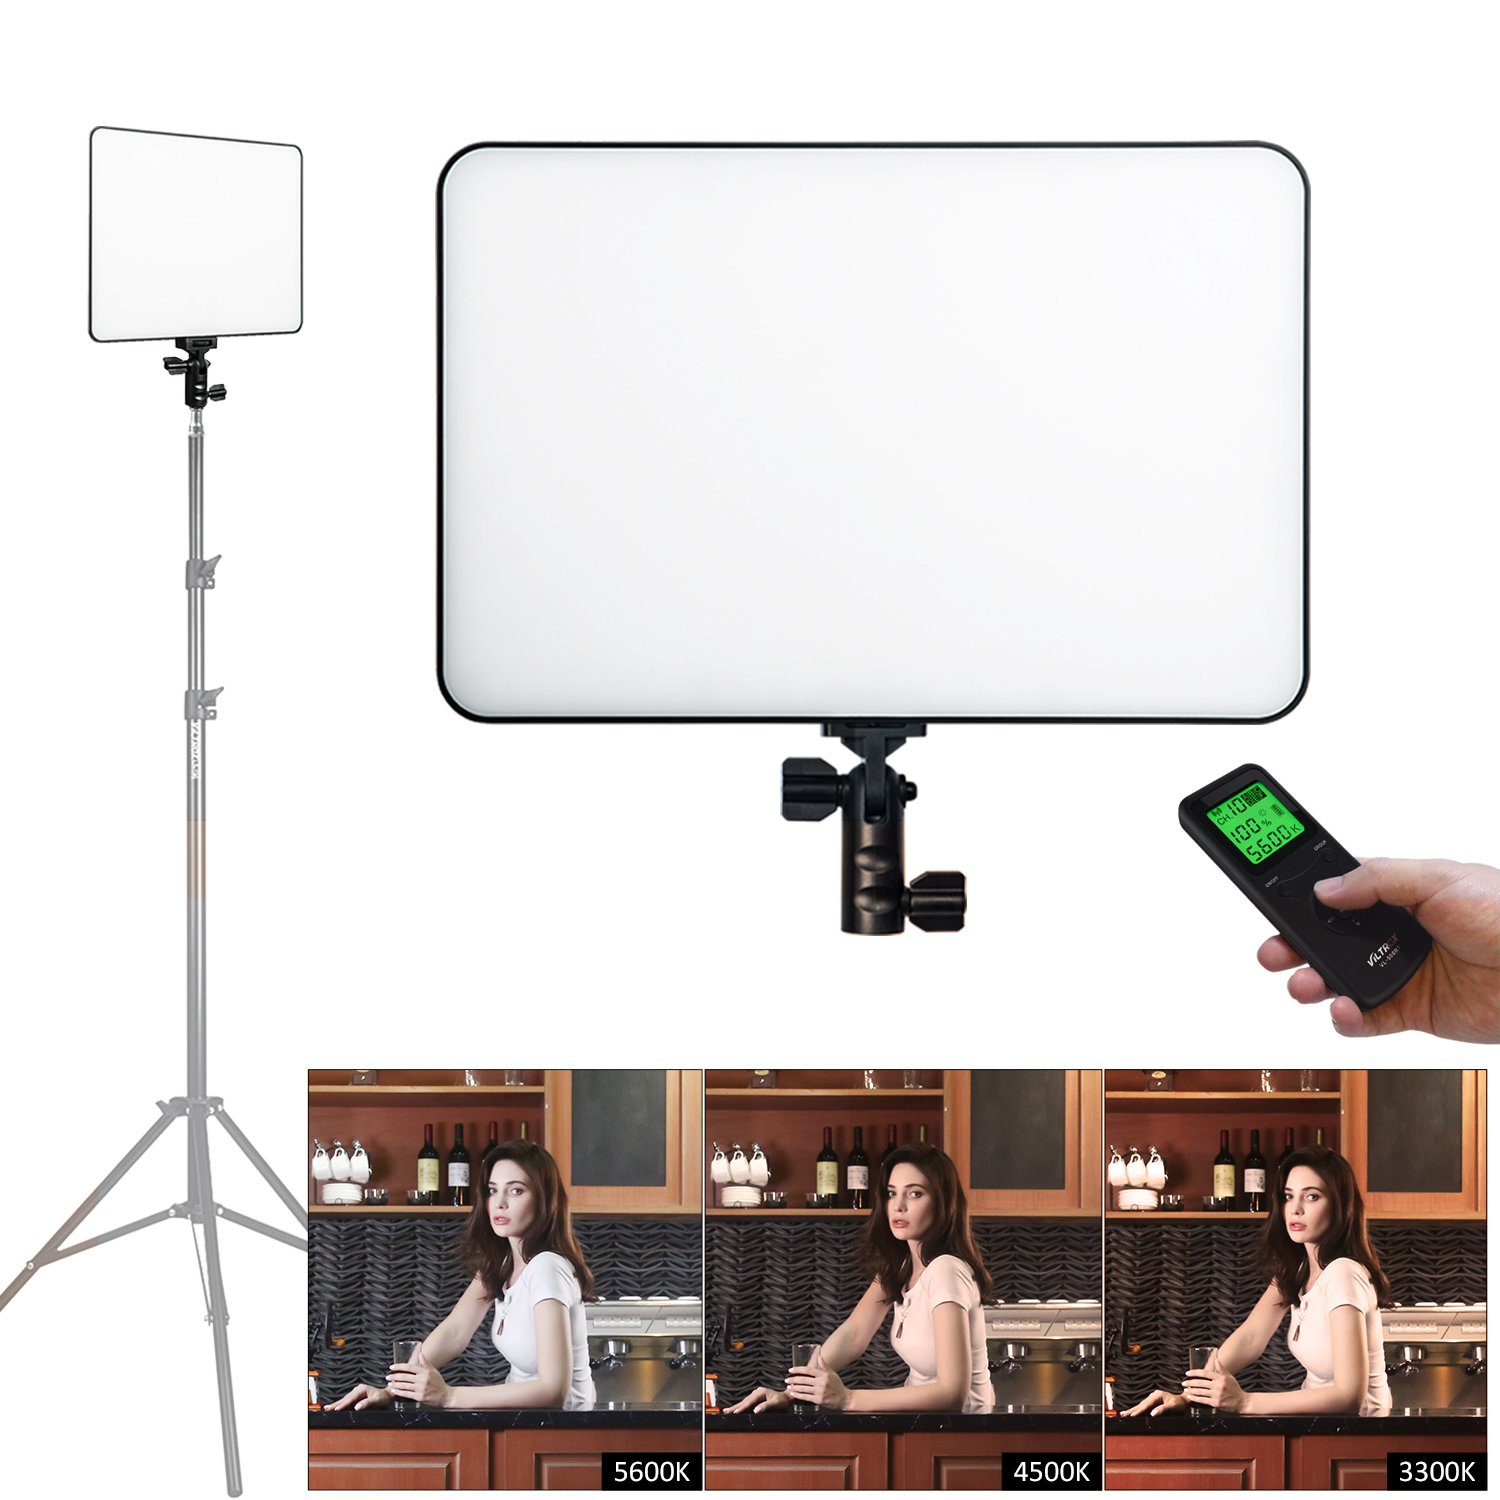 VILTROX VL-400T Super Slim Bi-color LED Video Light Panel, Dimmable LED Camera Light Lamp for DSLR Camcorders Photo Studio Photography, 5600K~3300K, CRI95, LCD Display Screen, Wireless Remote Control,